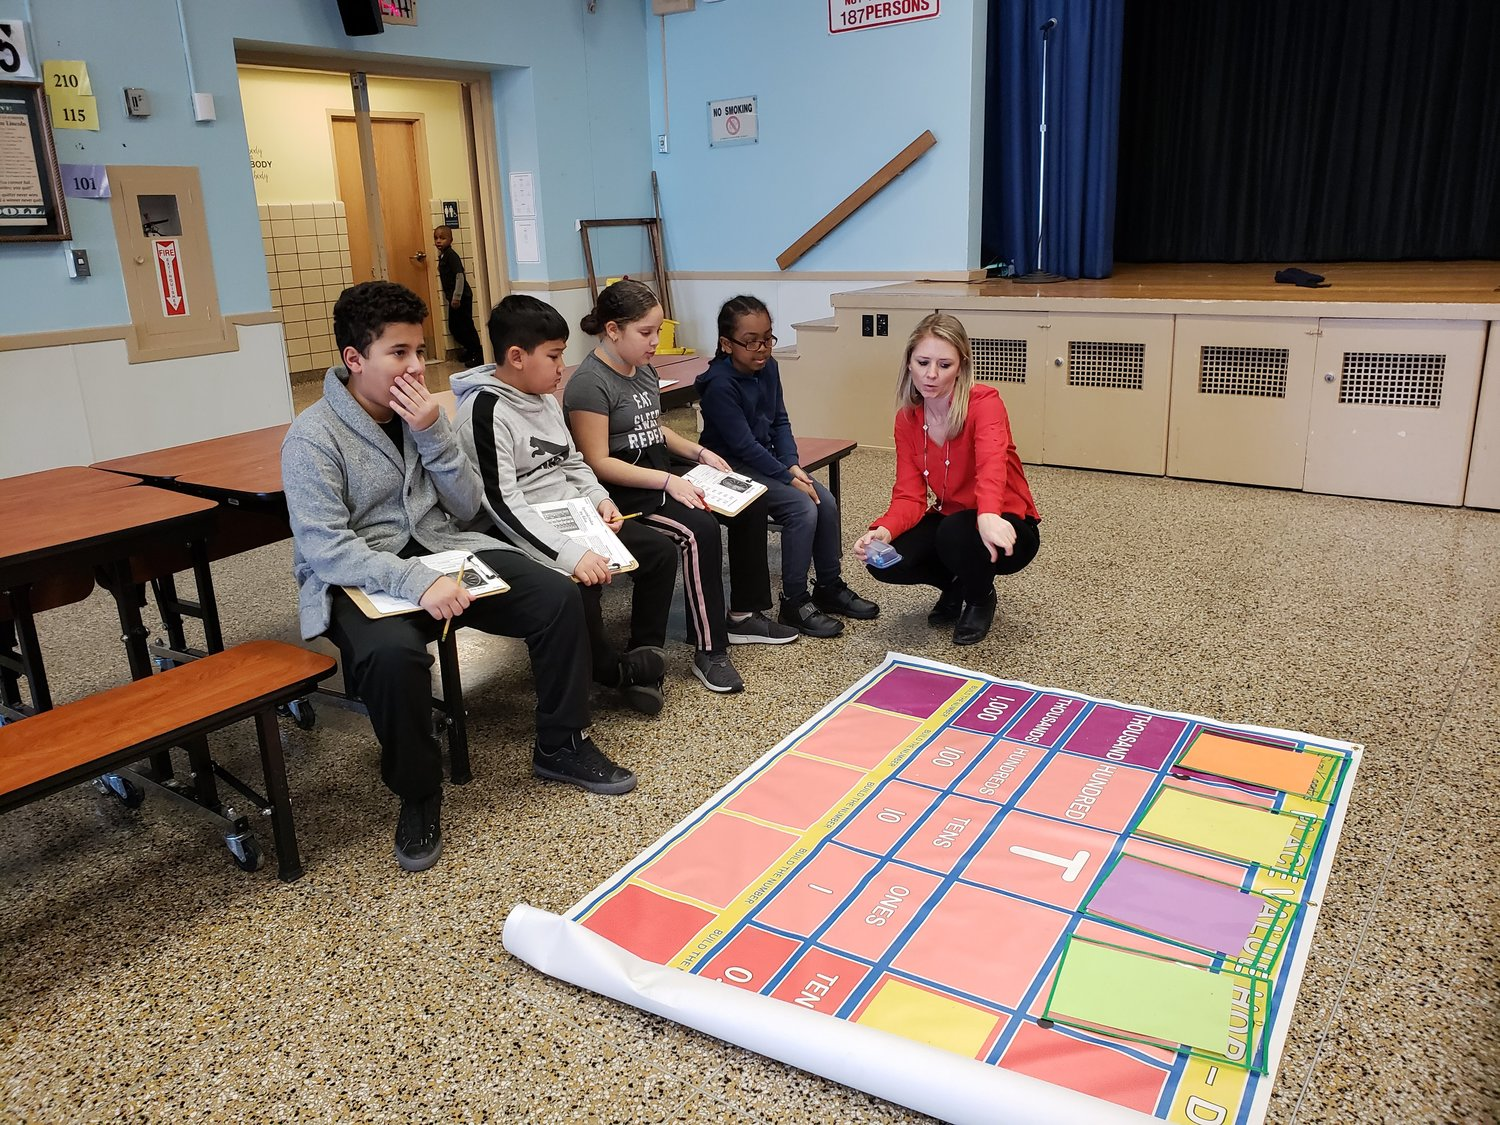 Leo F. Giblyn School fourth-graders, from left, Johnny Nunez, Kenneth Reinoso, Angelina De Los Santos and Owen Bruce listened as Jahn Corbo, the school's math specialist, explained the rules and objectives of the place value mat on Monday.